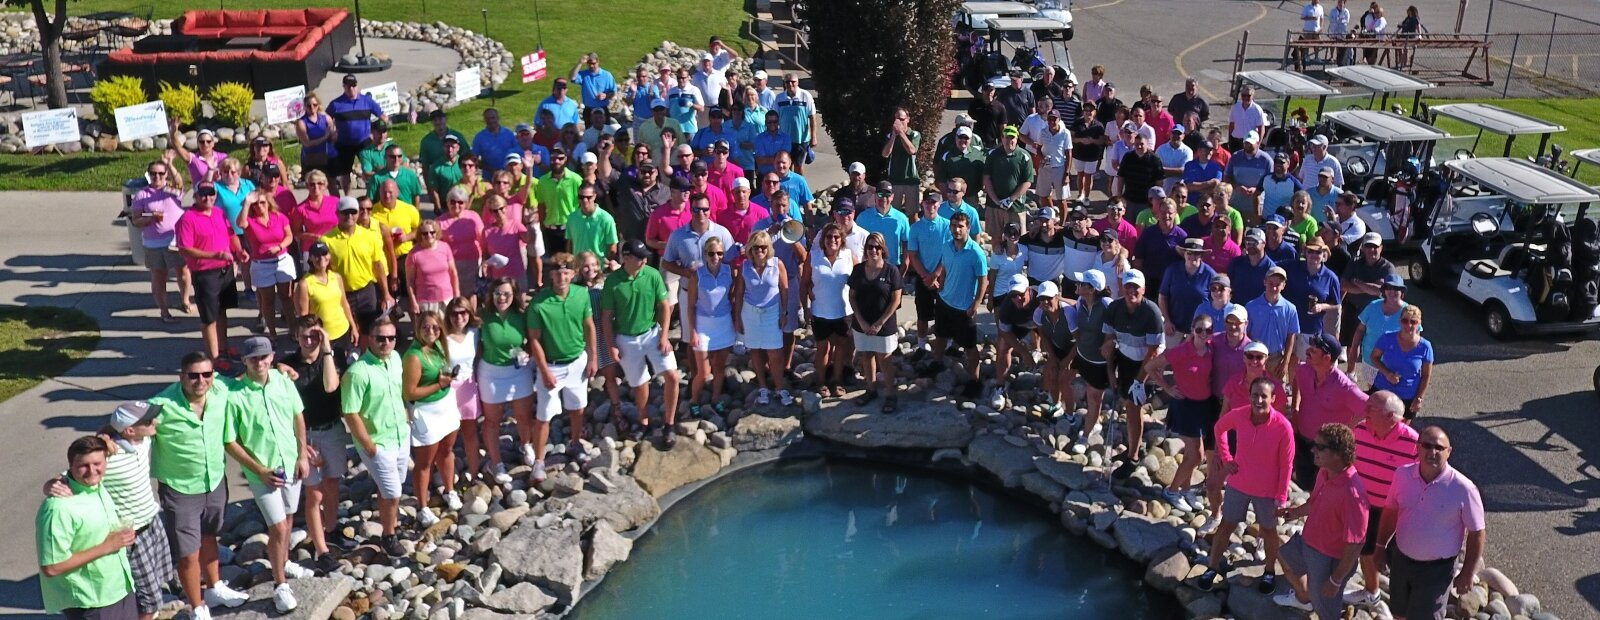 A rainbow of colors shows support for cancer patients at the Tee It Up golf outing.